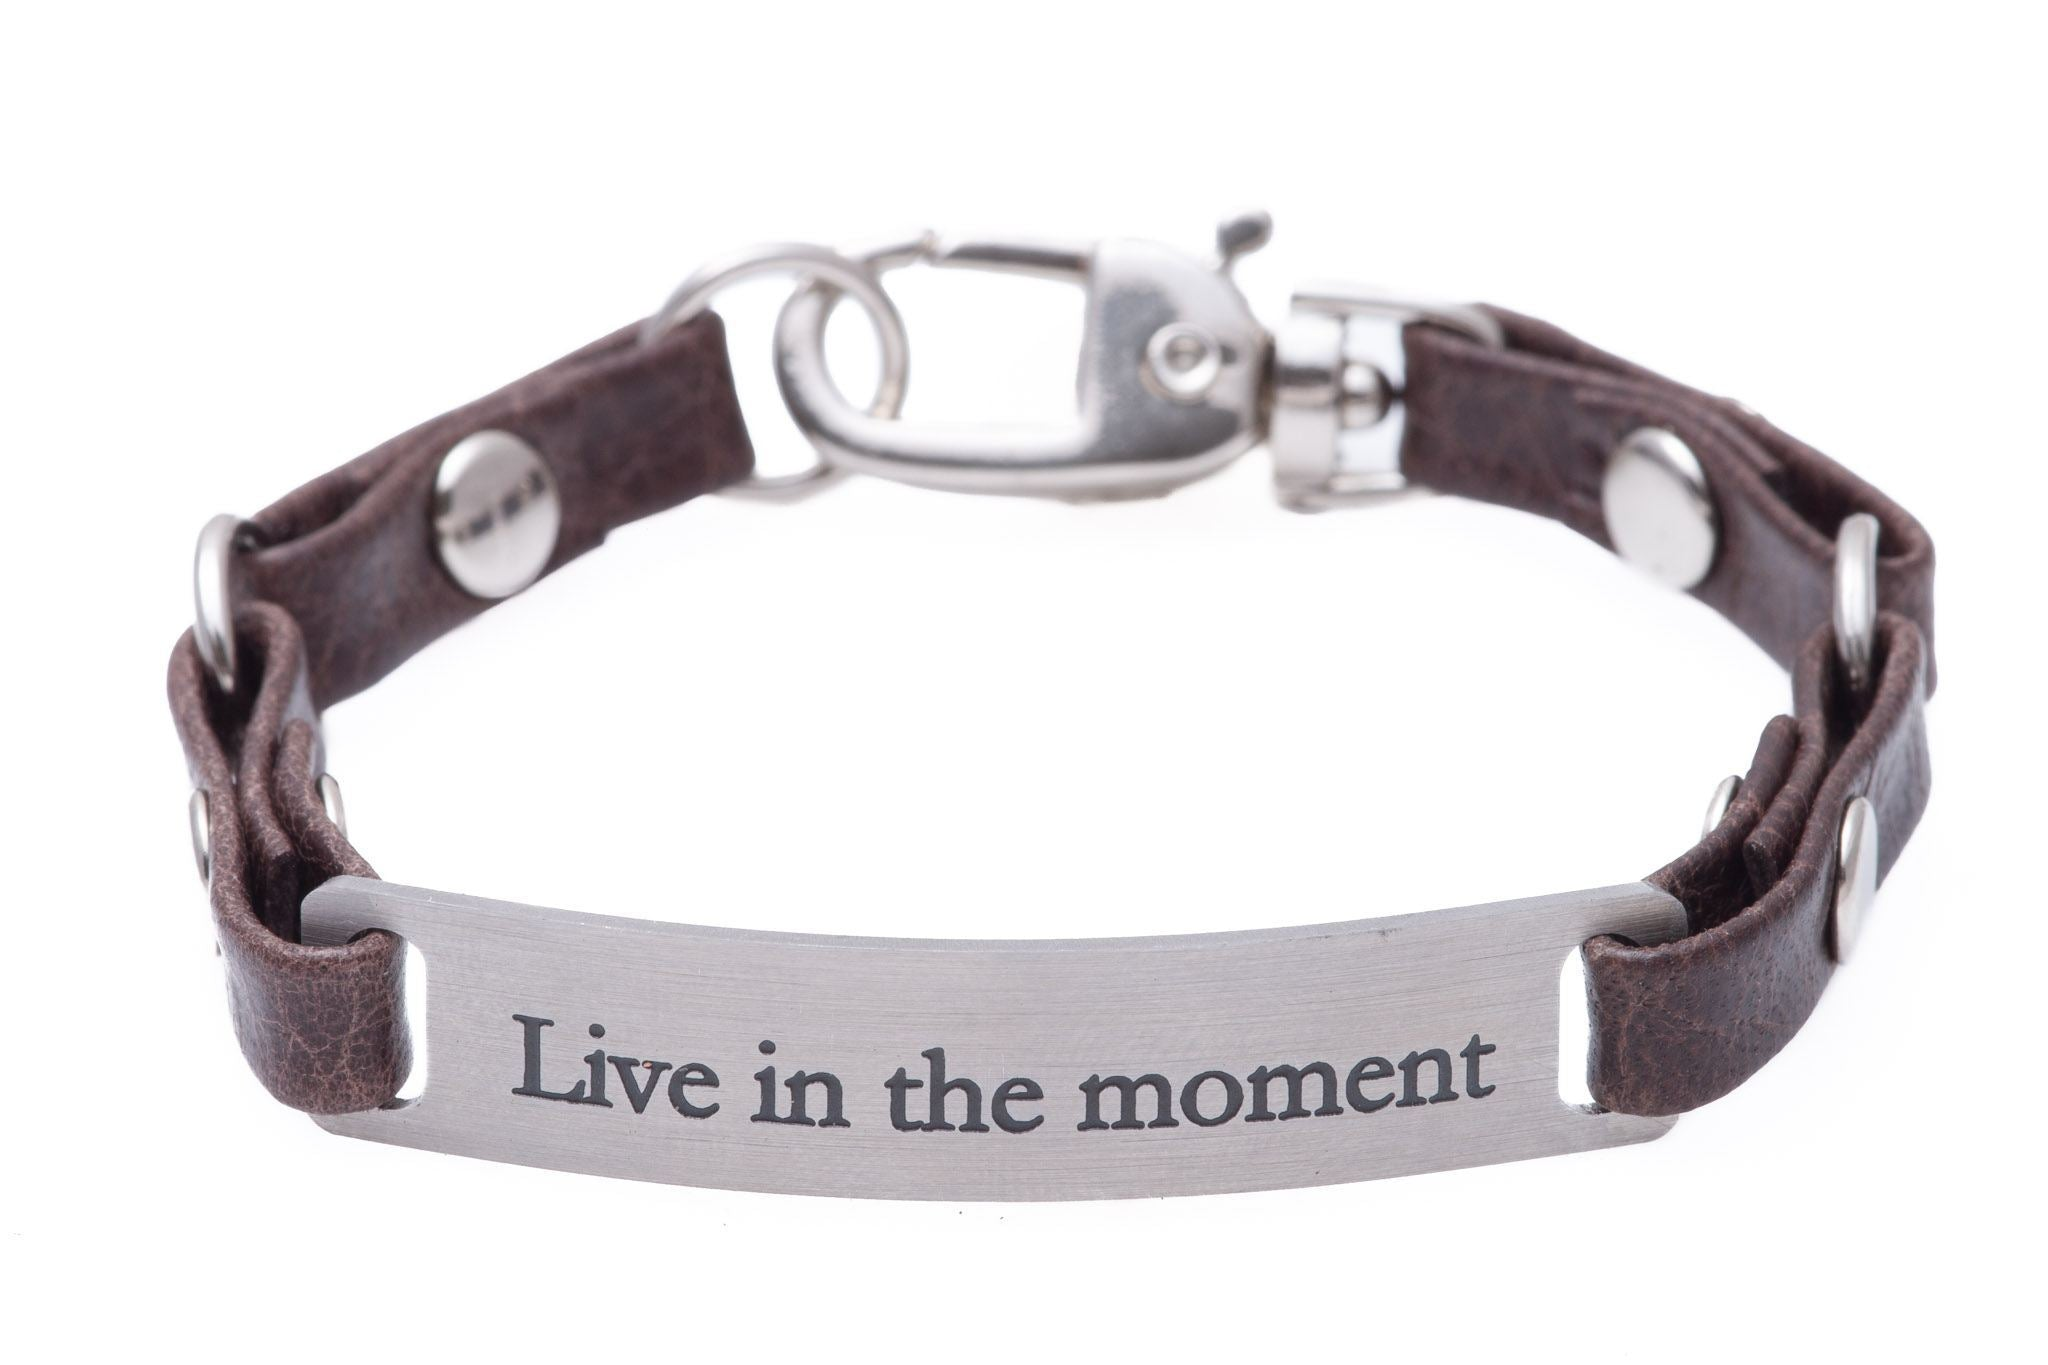 Mini Message Bracelet Brown Leather Live The Moment